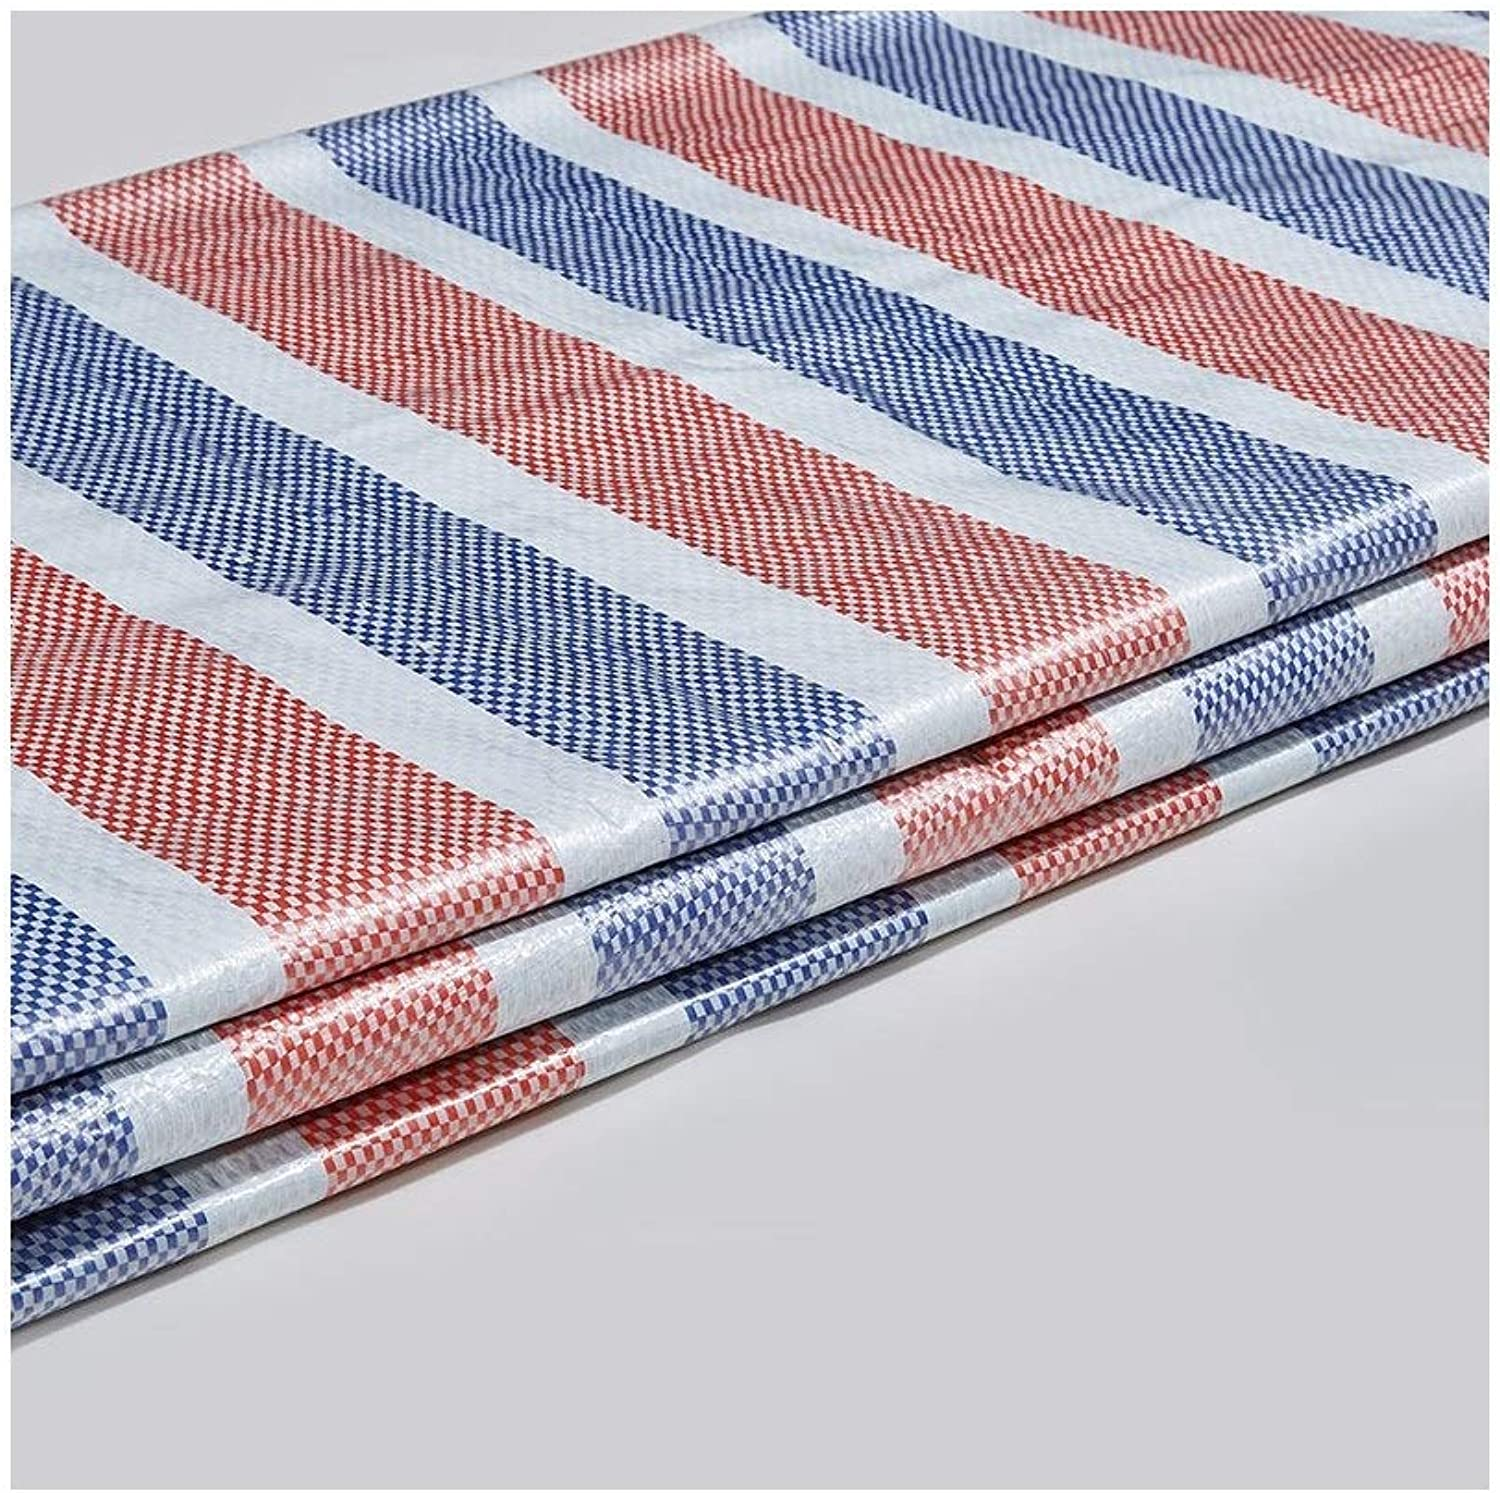 LQQGXL Thick color Strips Waterproof and Rainproof Plastic Cloth Awning Outdoor Shade dustproof and Windproof Waterproof Tarpaulin